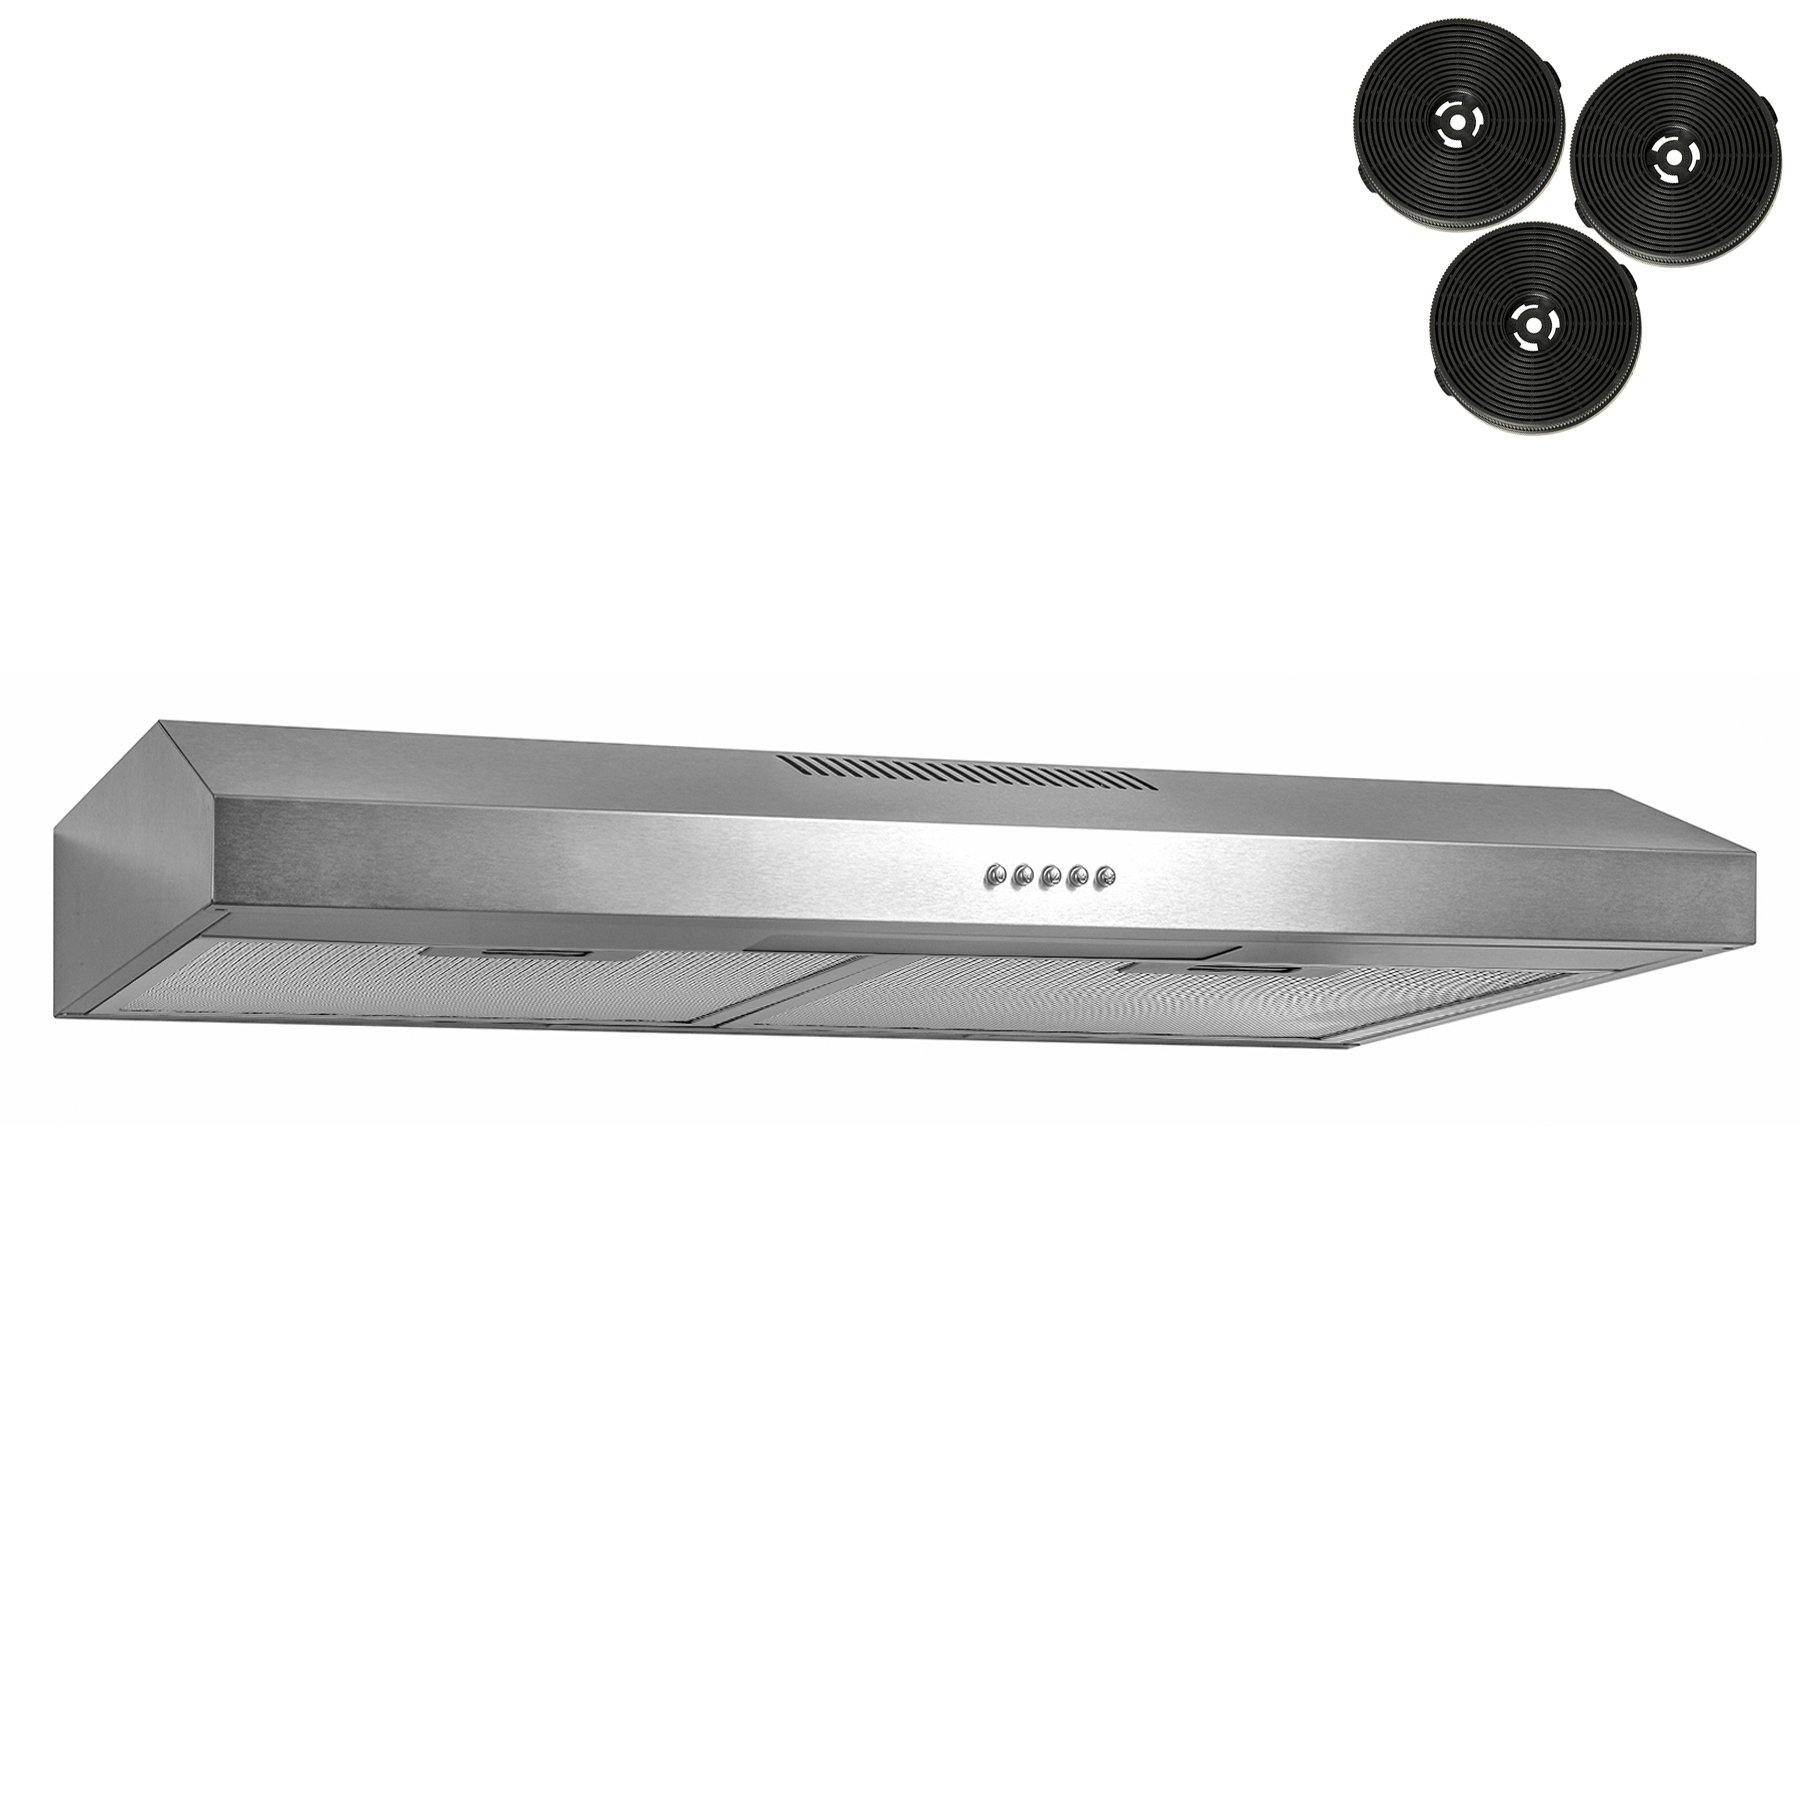 AKDY 24'' Under Cabinet Stainless Steel Push Panel Kitchen Range Hood Cooking Fan w/Carbon Filters